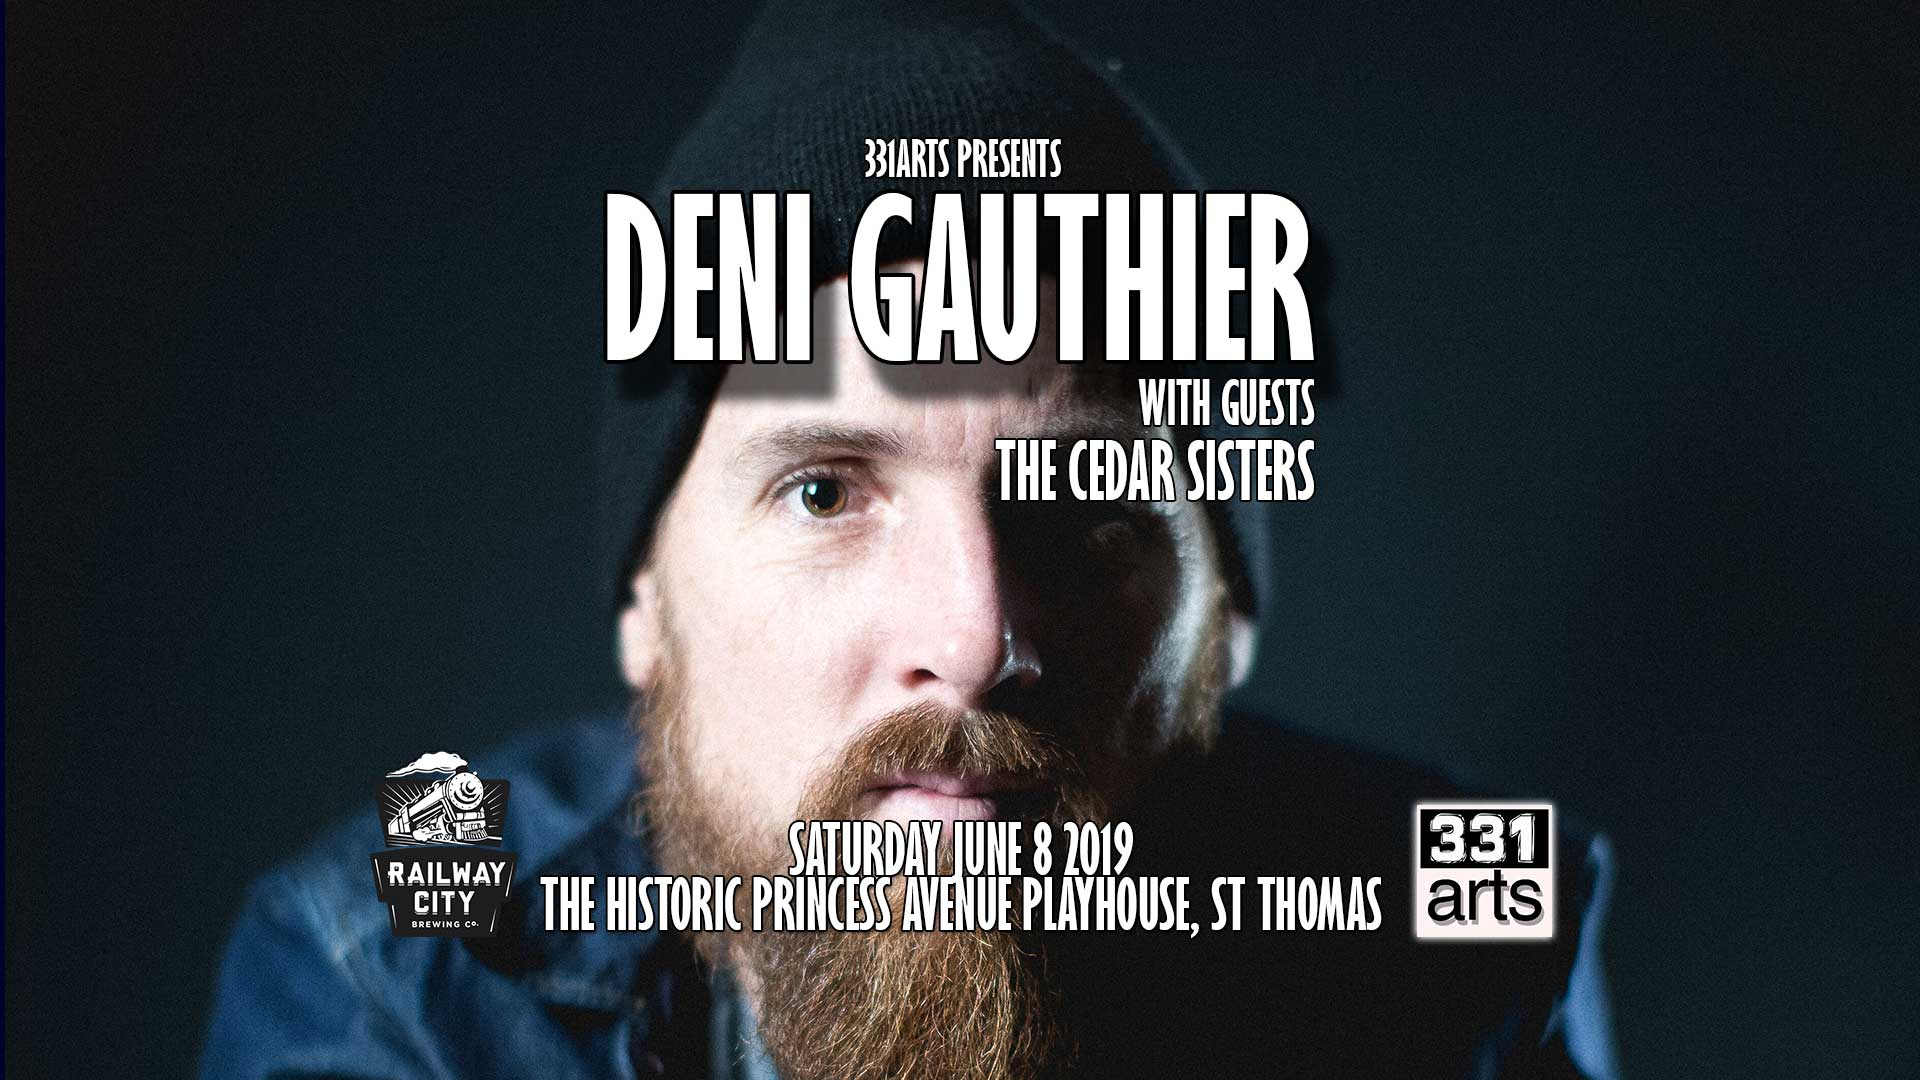 Deni Gauthier with guests The Cedar Sisters